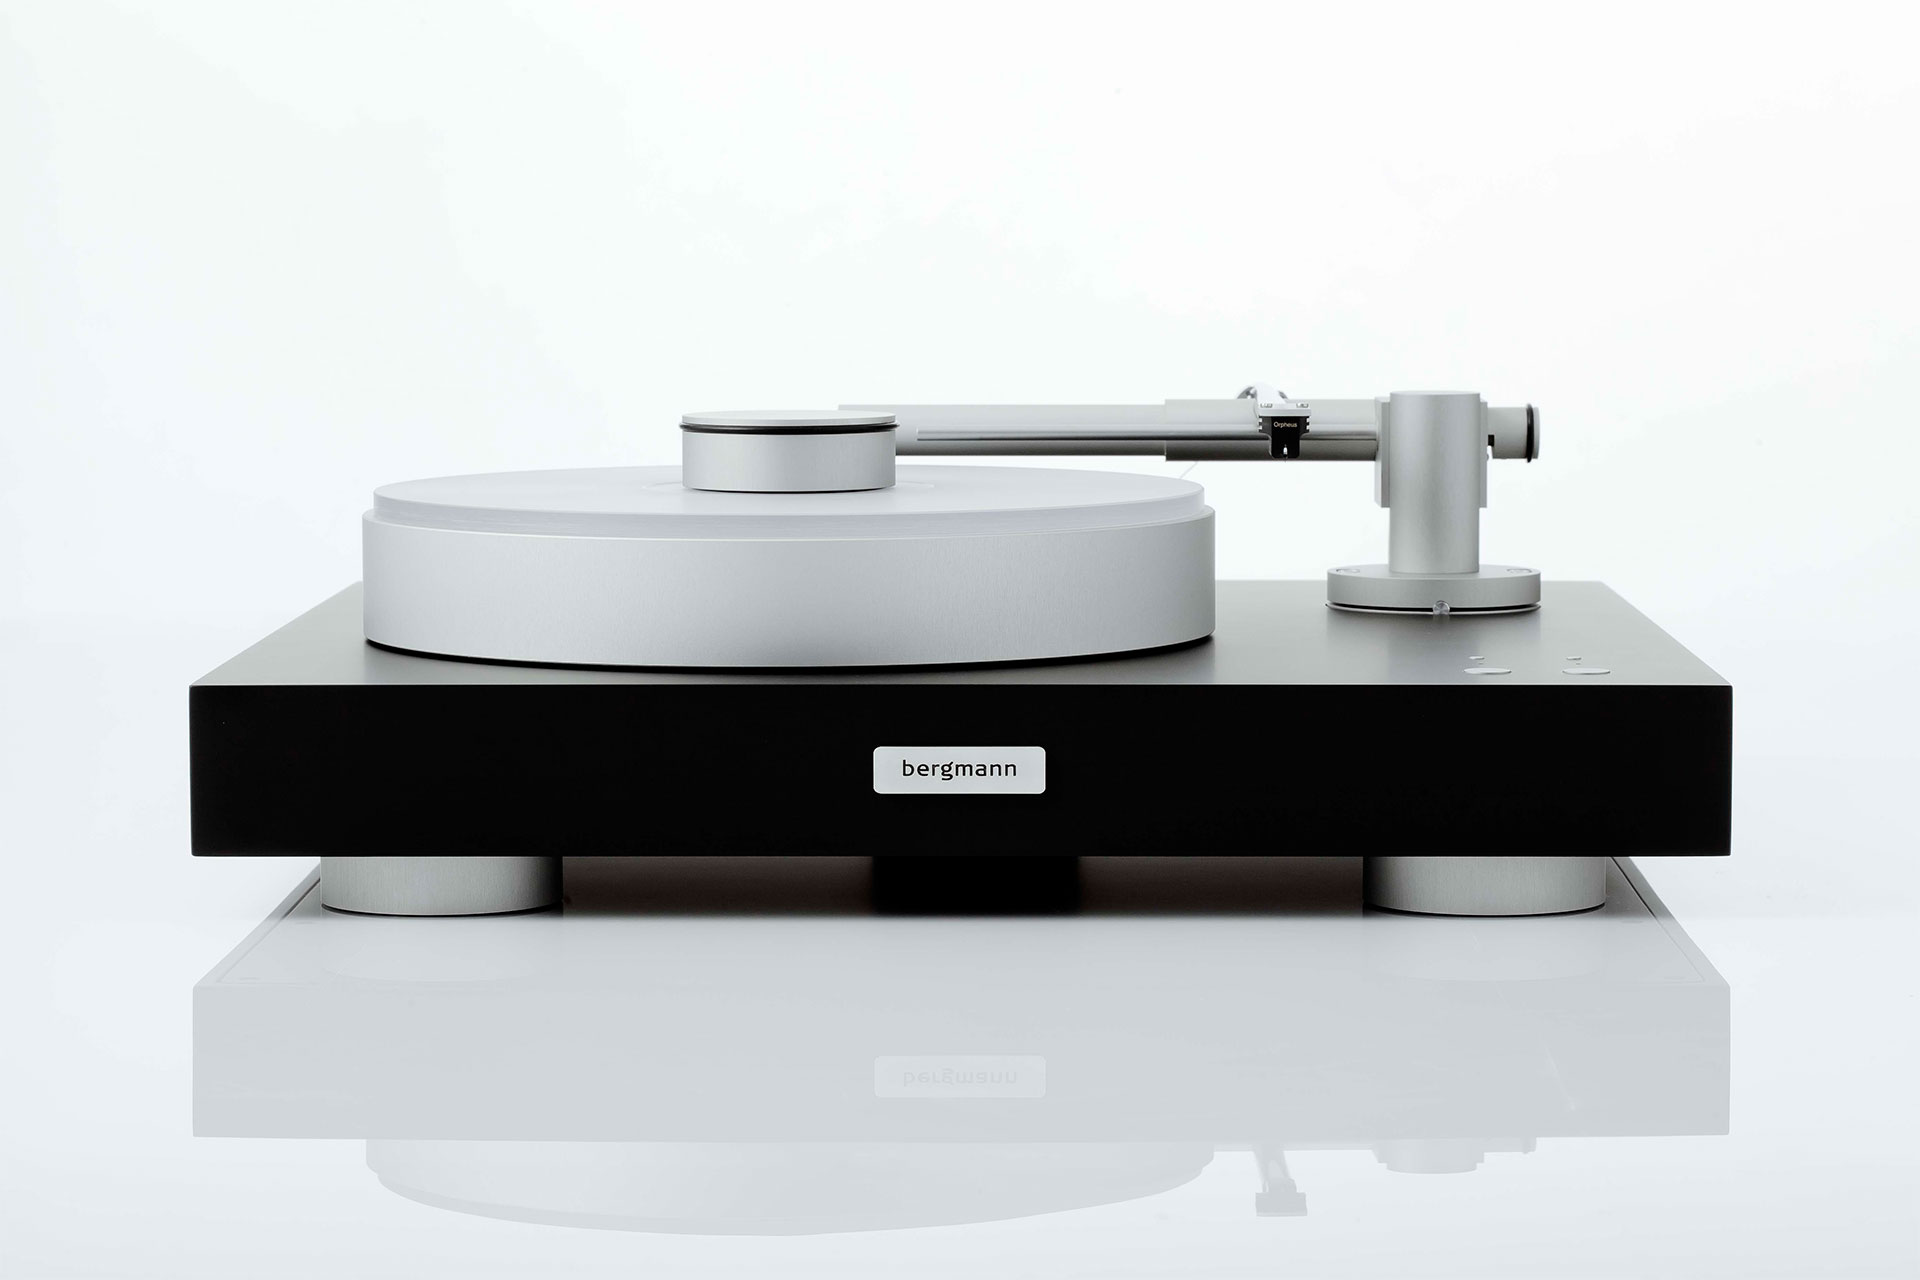 Magne Turntable With Tonearm From Bergmann Audio